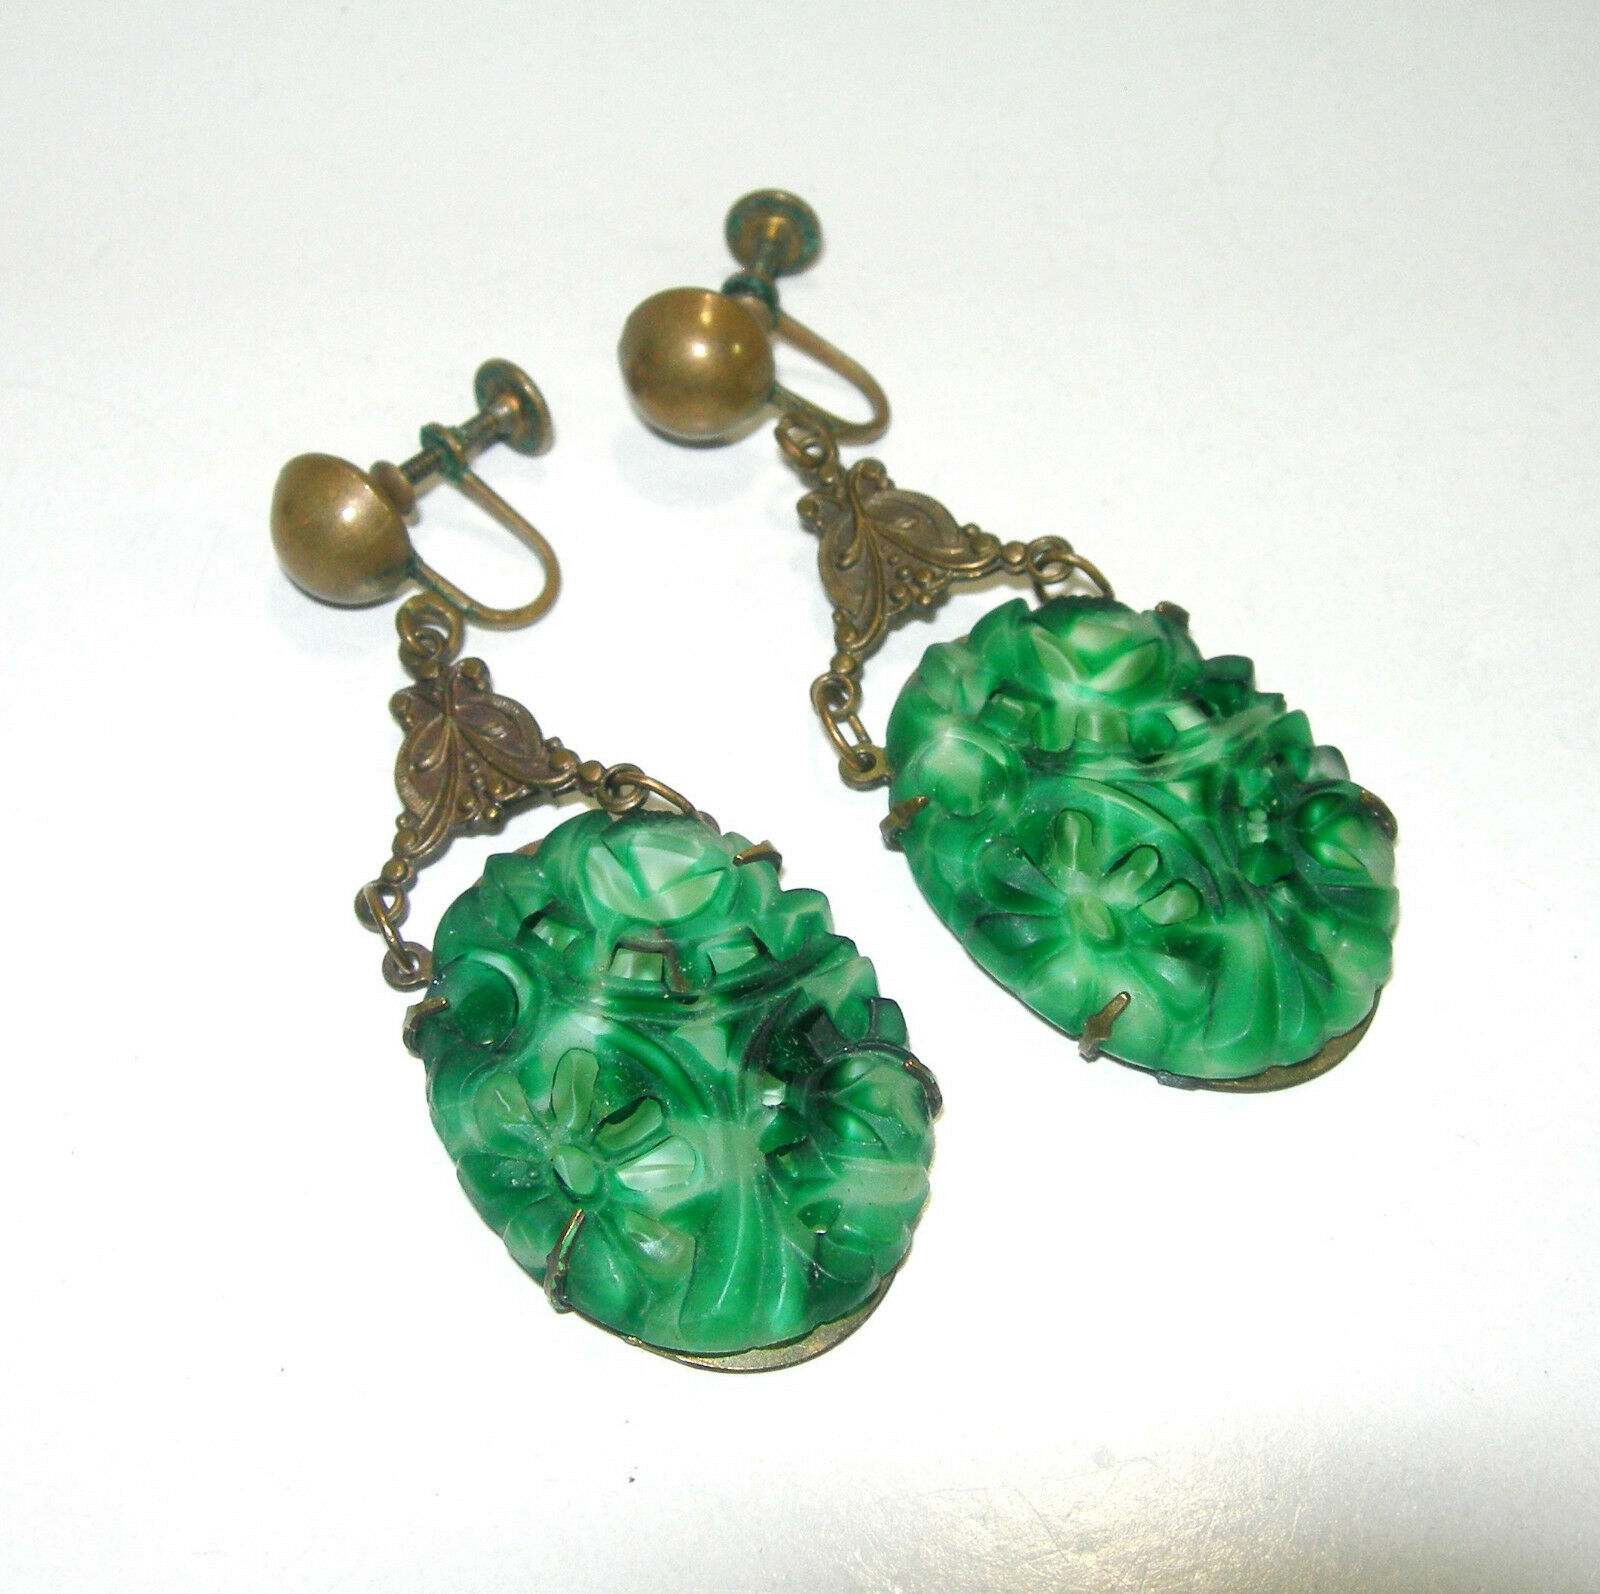 VINTAGE LARGE SIGNED PIERCED CARVED FAKE JADE GREEN GLASS BARCLAY EARRINGS